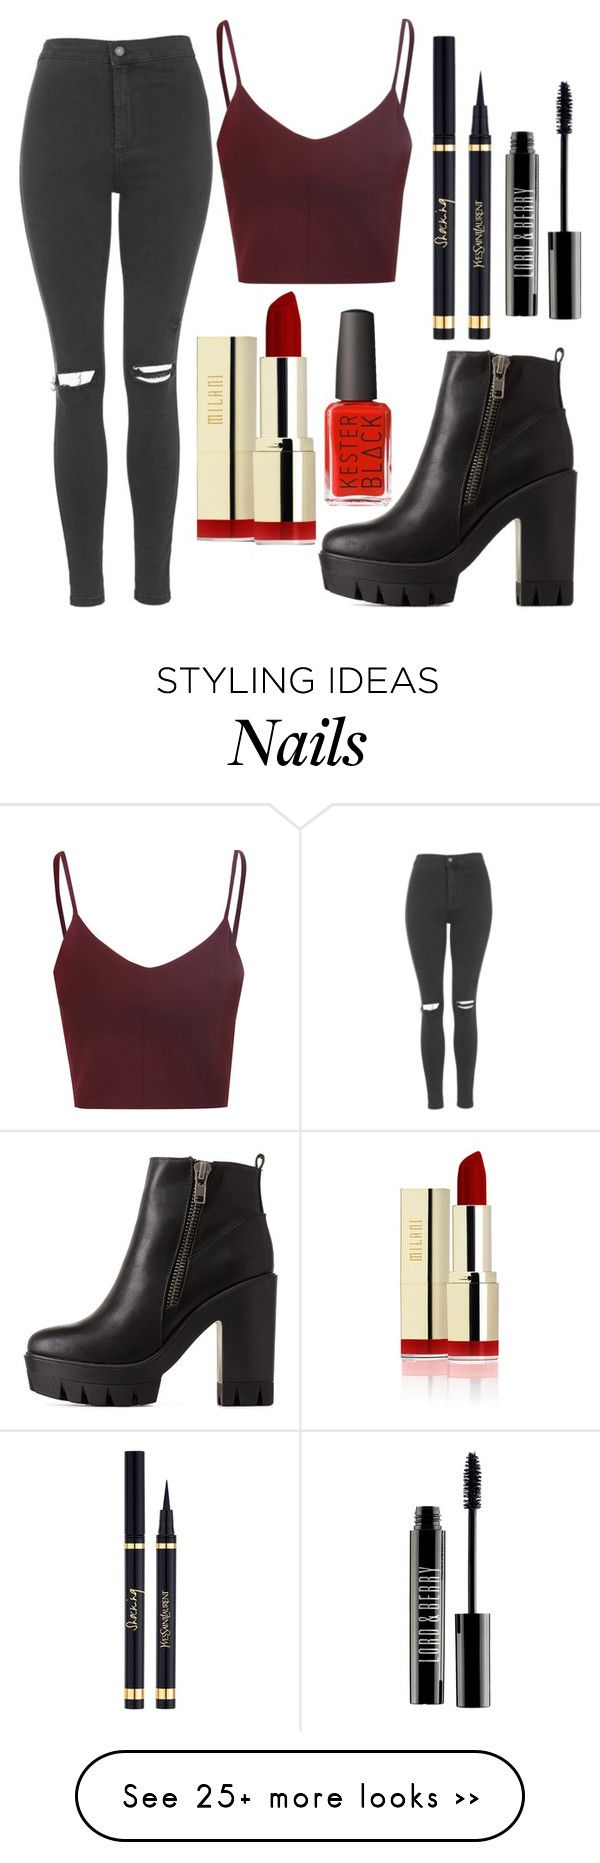 """Untitled #41"" by megana-syrett on Polyvore featuring Charlotte Russe, Topshop, Glamorous and Lord & Berry"